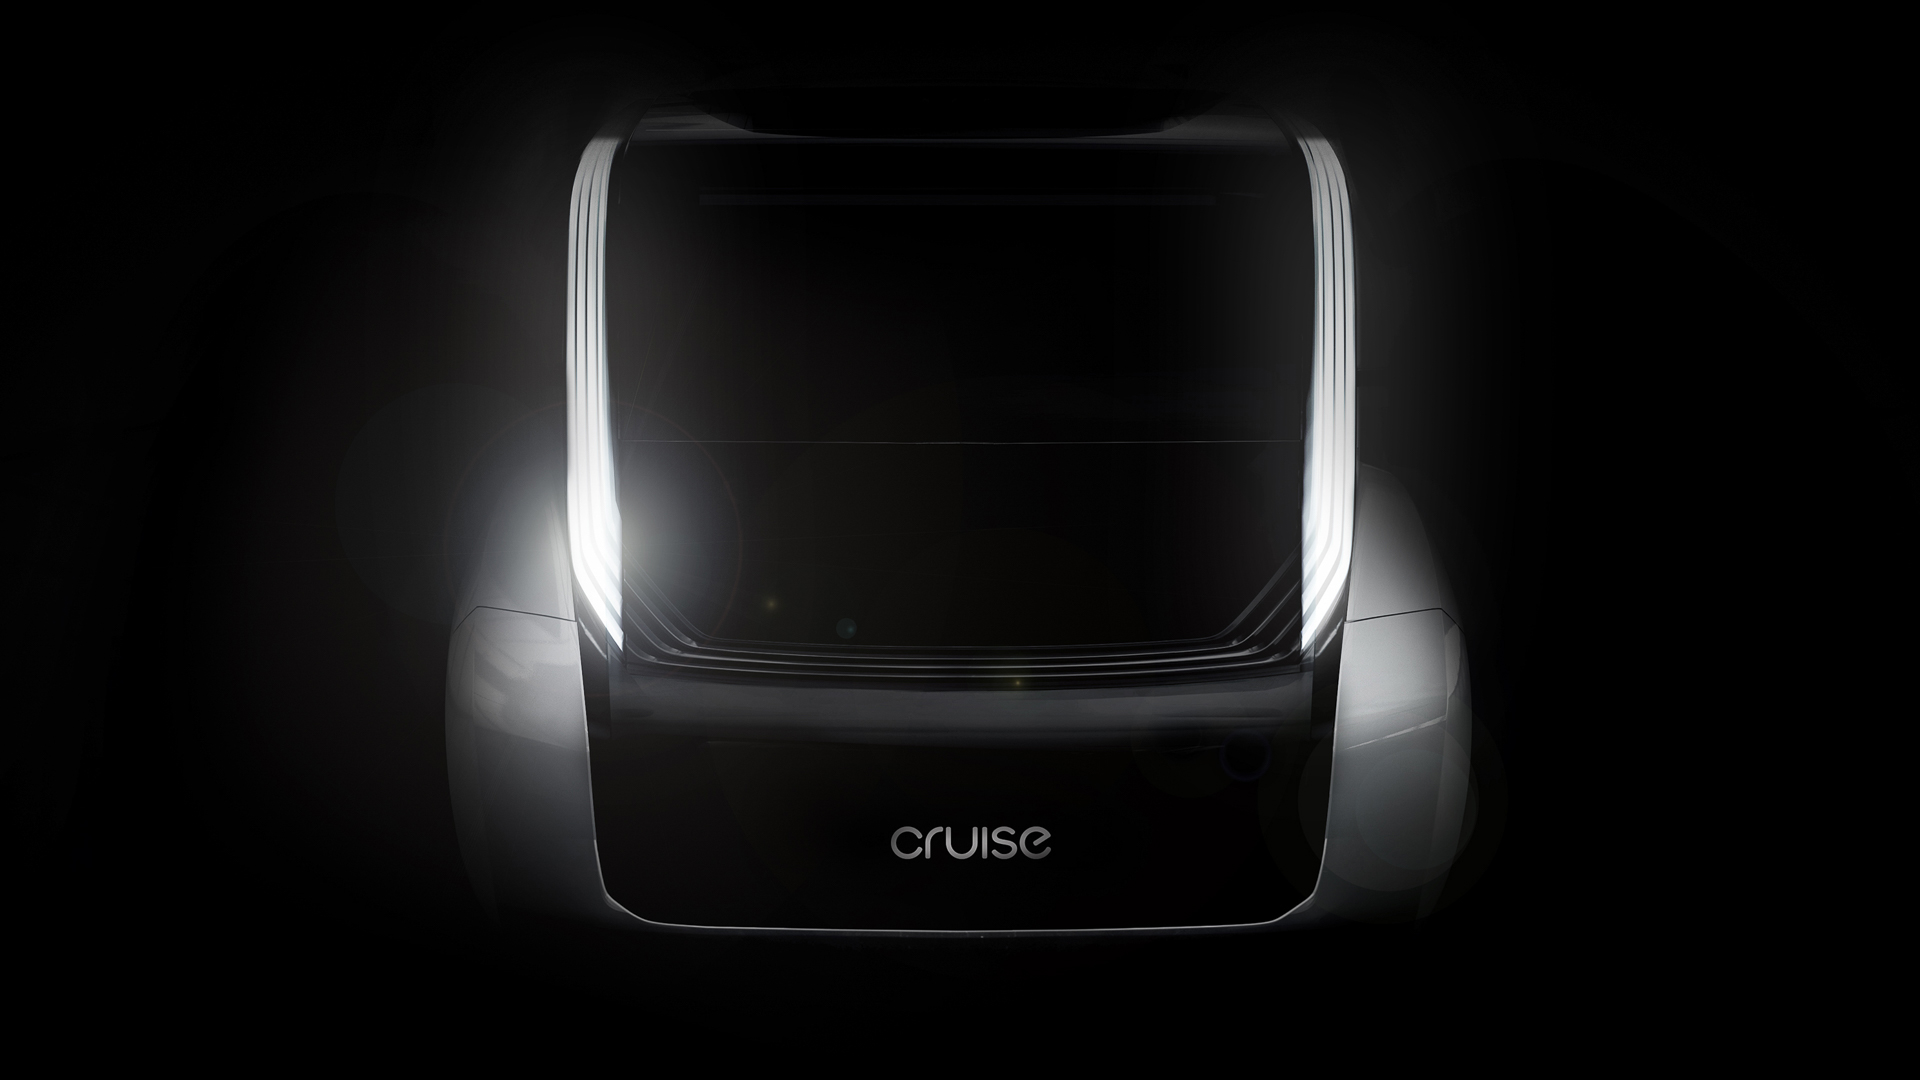 Cruise, General Motors and Honda announced that they will join forces to fund and develop a purpose-built autonomous vehicle for Cruise that can serve a wide variety of use cases.